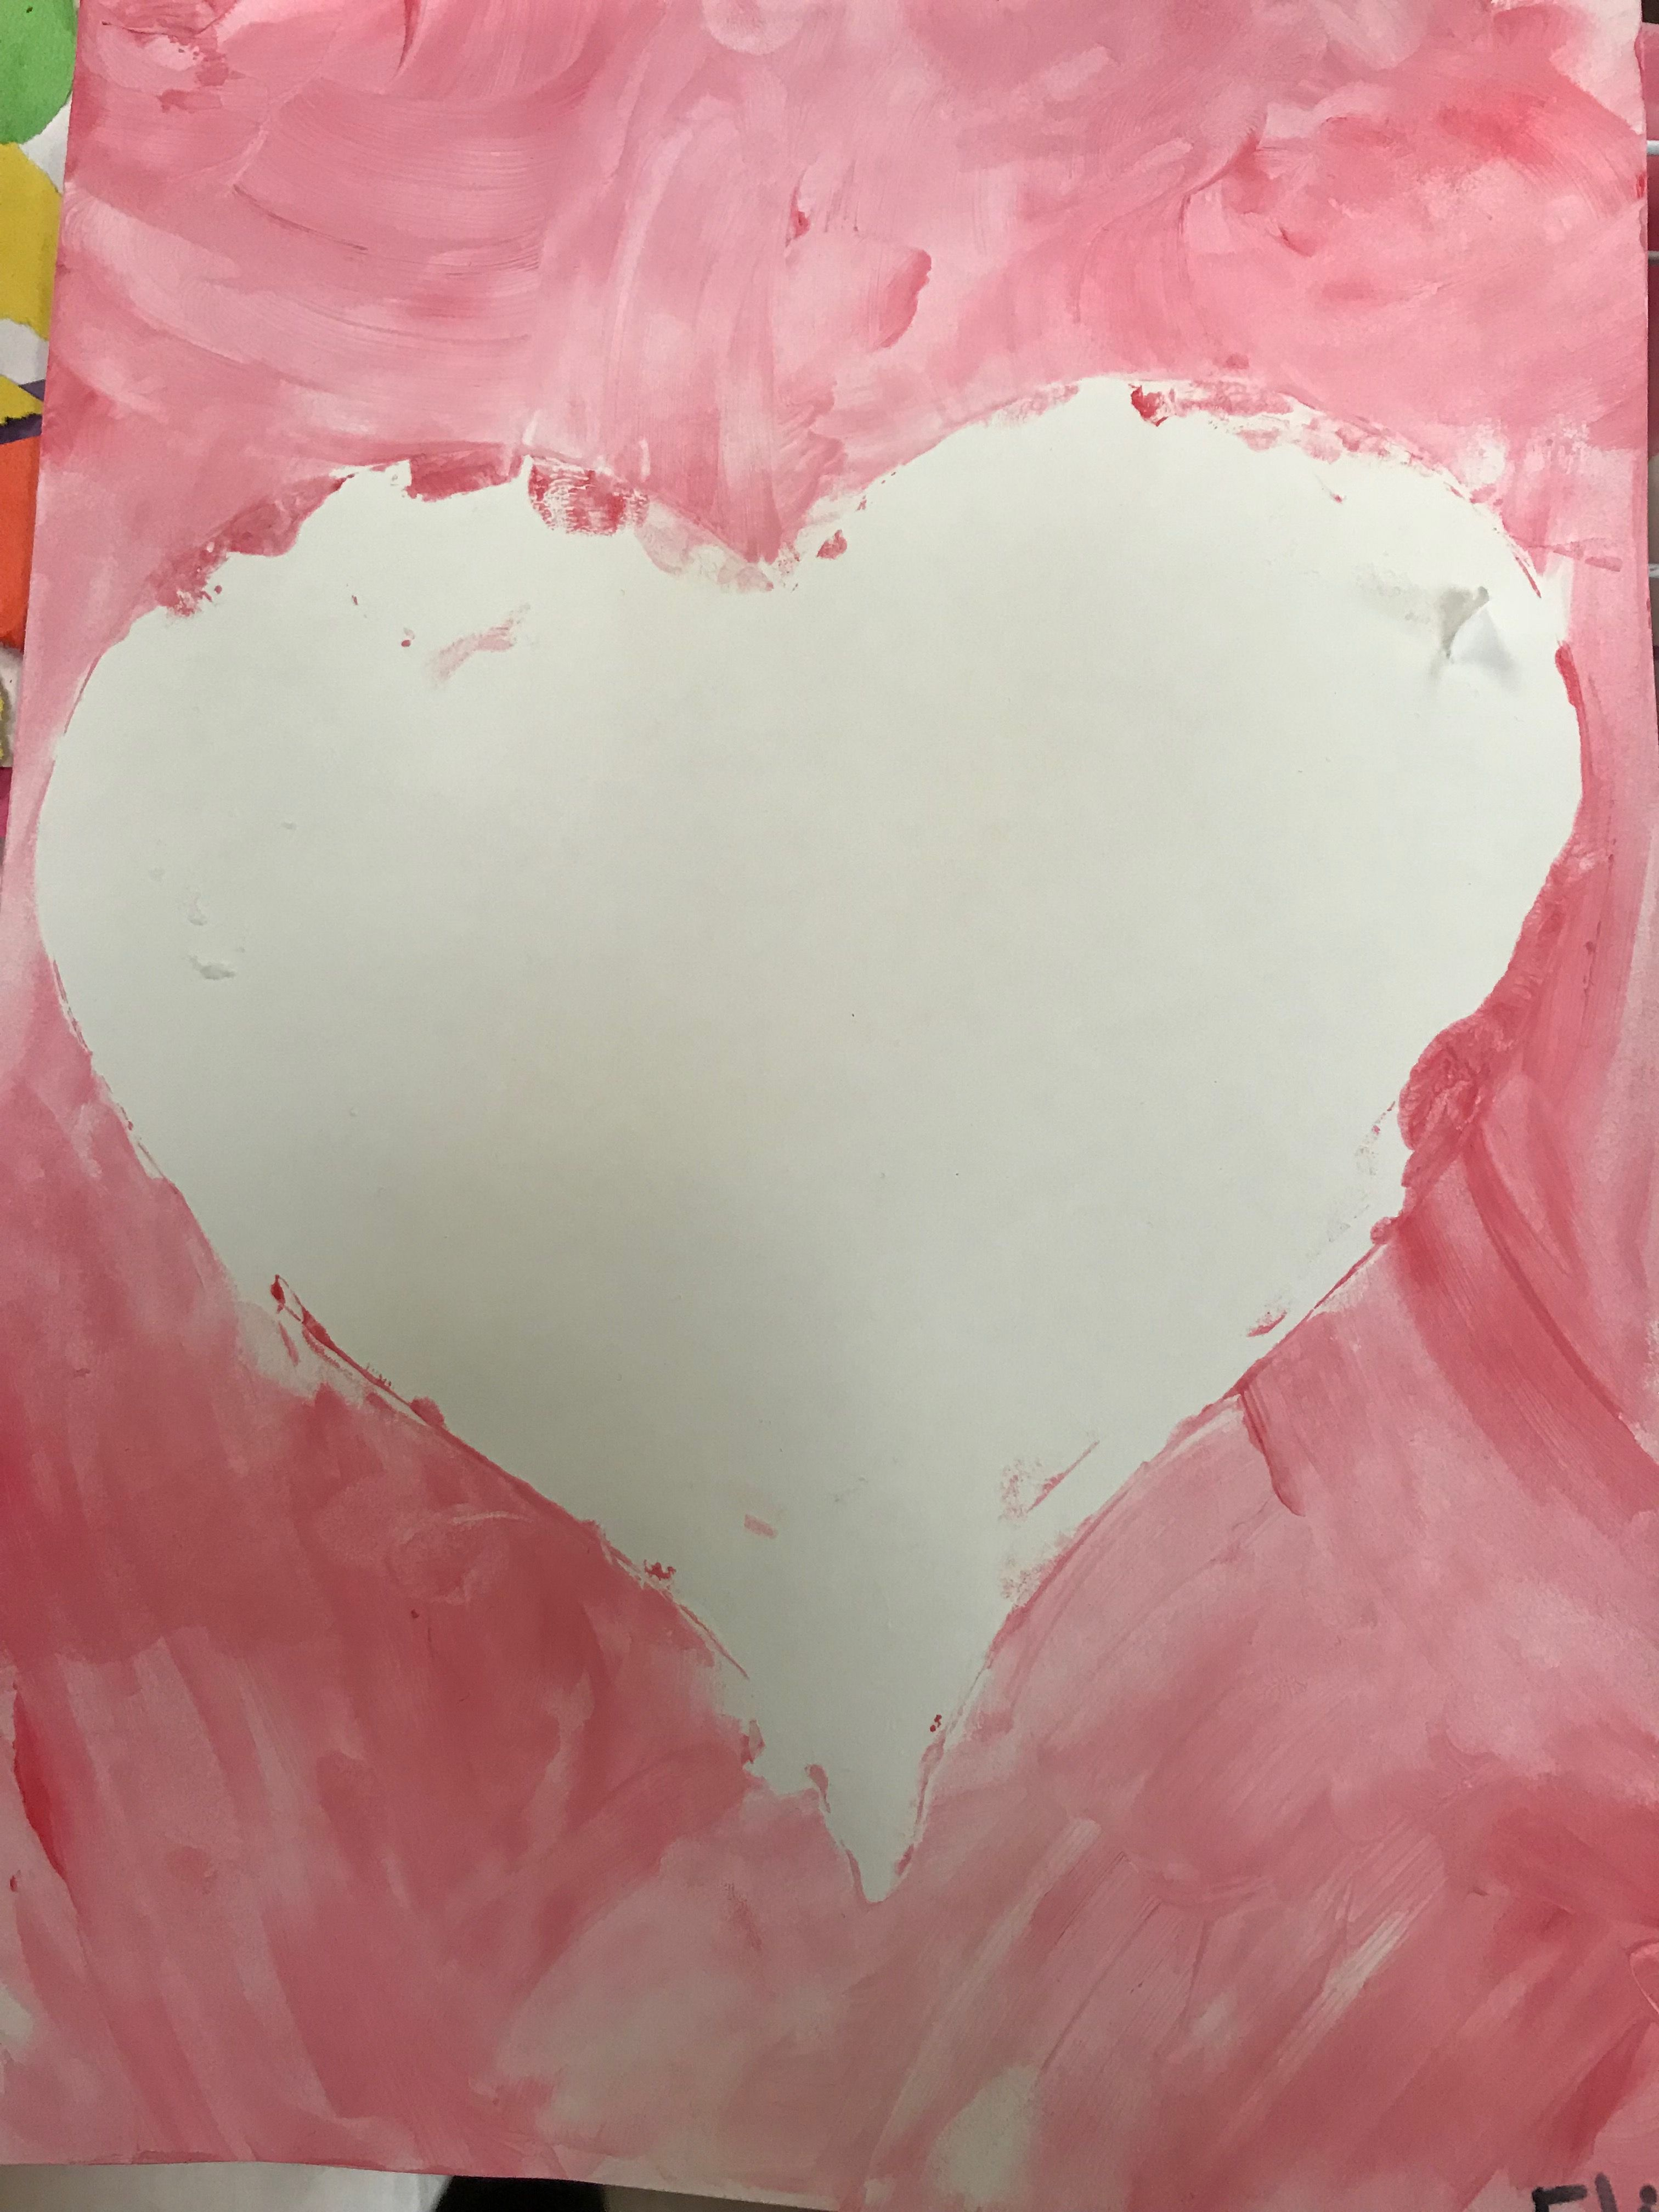 Kids Finger Paint Red And White To Make Pink Around Heart Dye Cut Then Remove